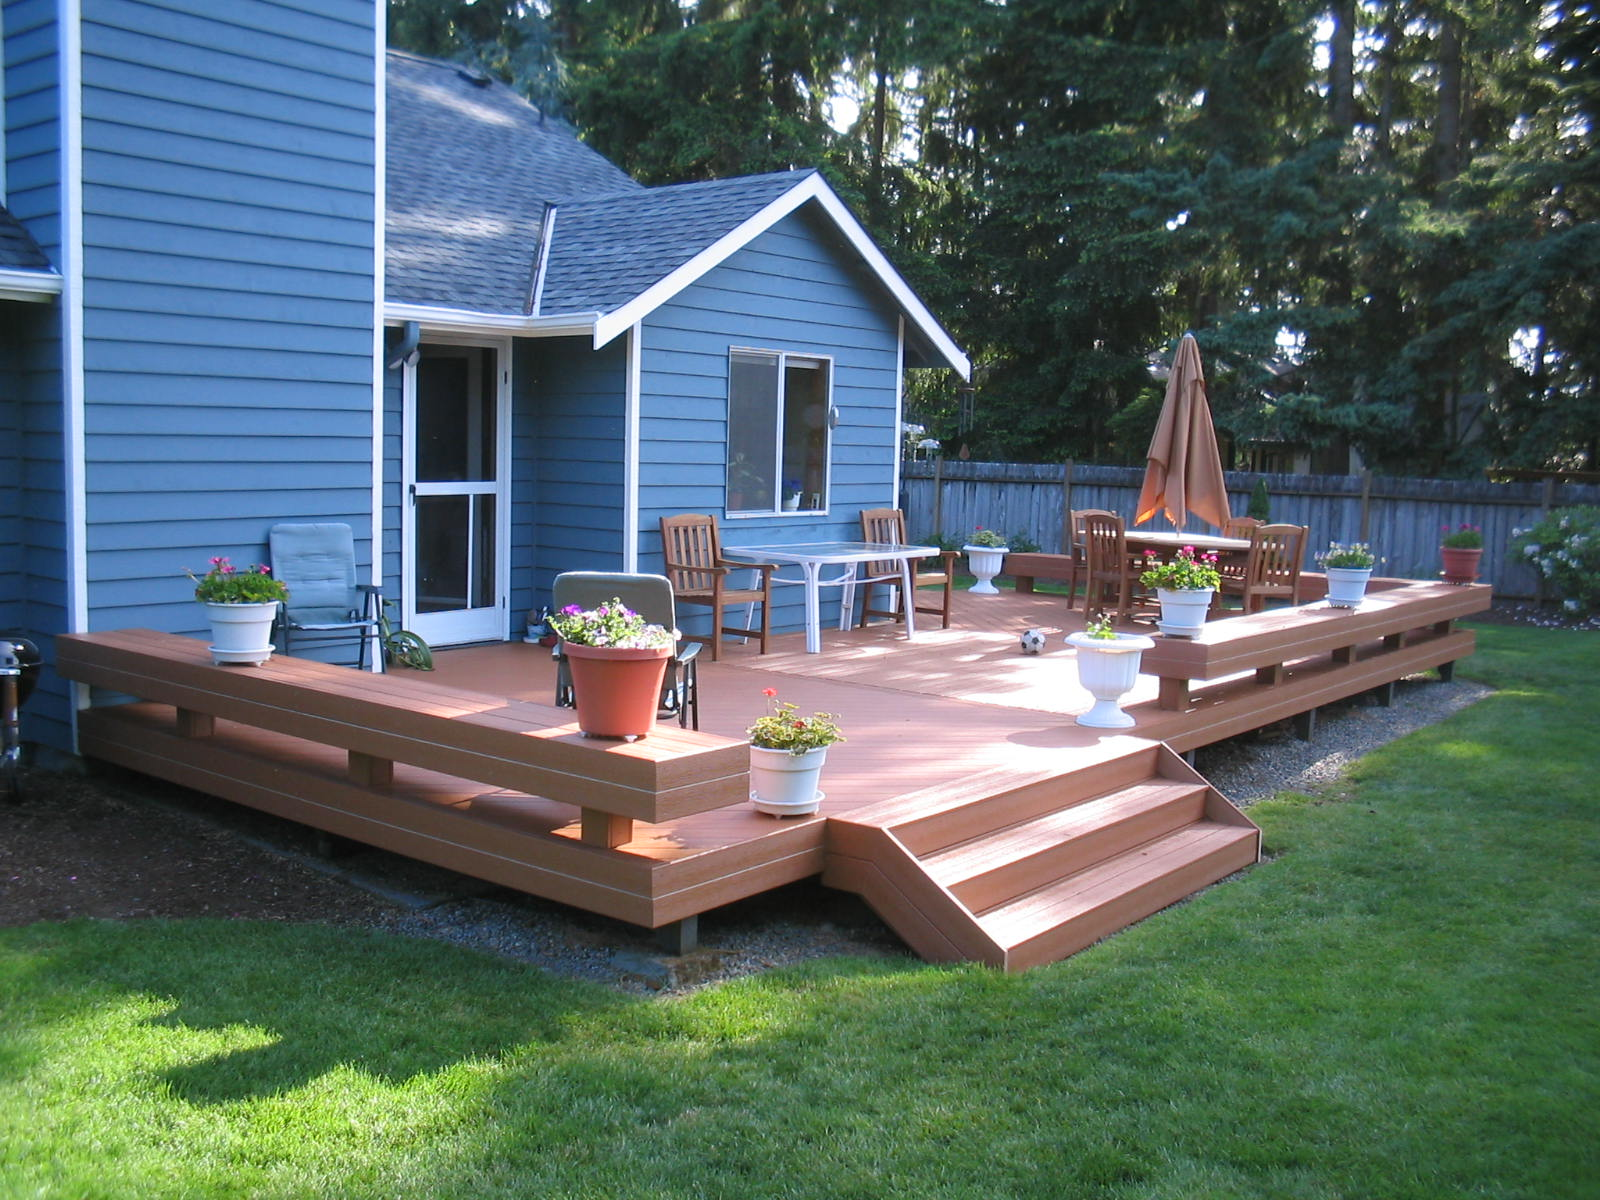 Creative Small Deck Ideas for Your Inspirations